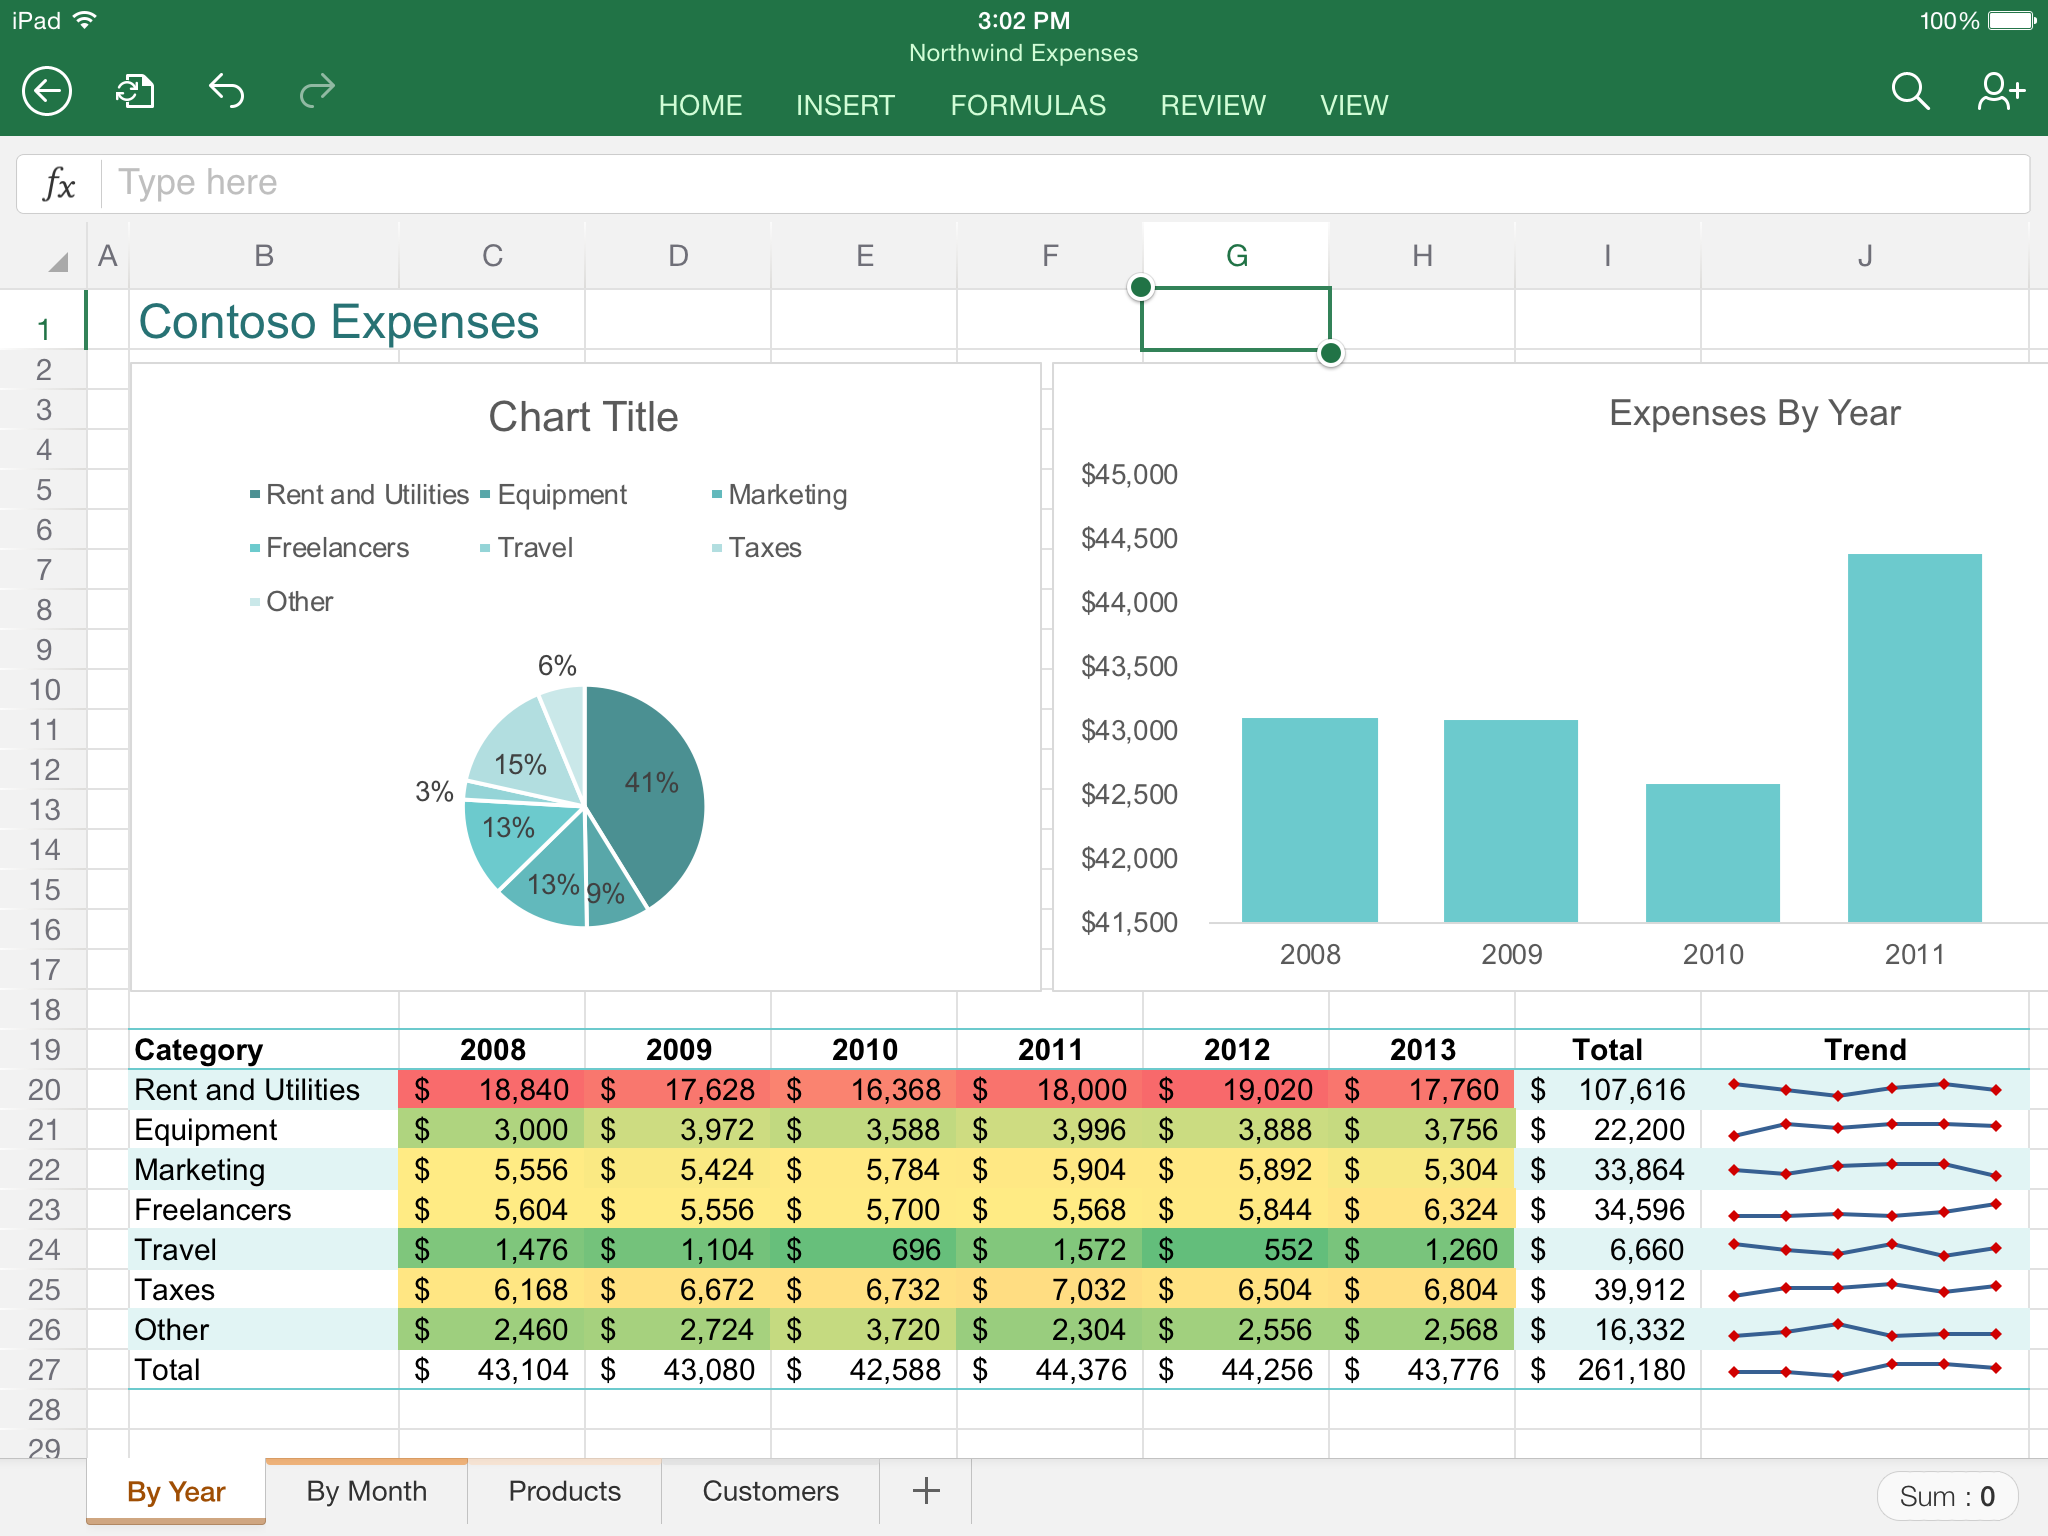 Ediblewildsus  Personable App Highlight Excel  Mobile Digital Now With Licious Excel In Action With Archaic Excel High Also Pie Of Pie Chart Excel  In Addition Sort On Excel And Sample Excel Spreadsheet For Practice As Well As Excel To Quickbooks Additionally How To Do A Vlookup On Excel From Youstonybrookedu With Ediblewildsus  Licious App Highlight Excel  Mobile Digital Now With Archaic Excel In Action And Personable Excel High Also Pie Of Pie Chart Excel  In Addition Sort On Excel From Youstonybrookedu